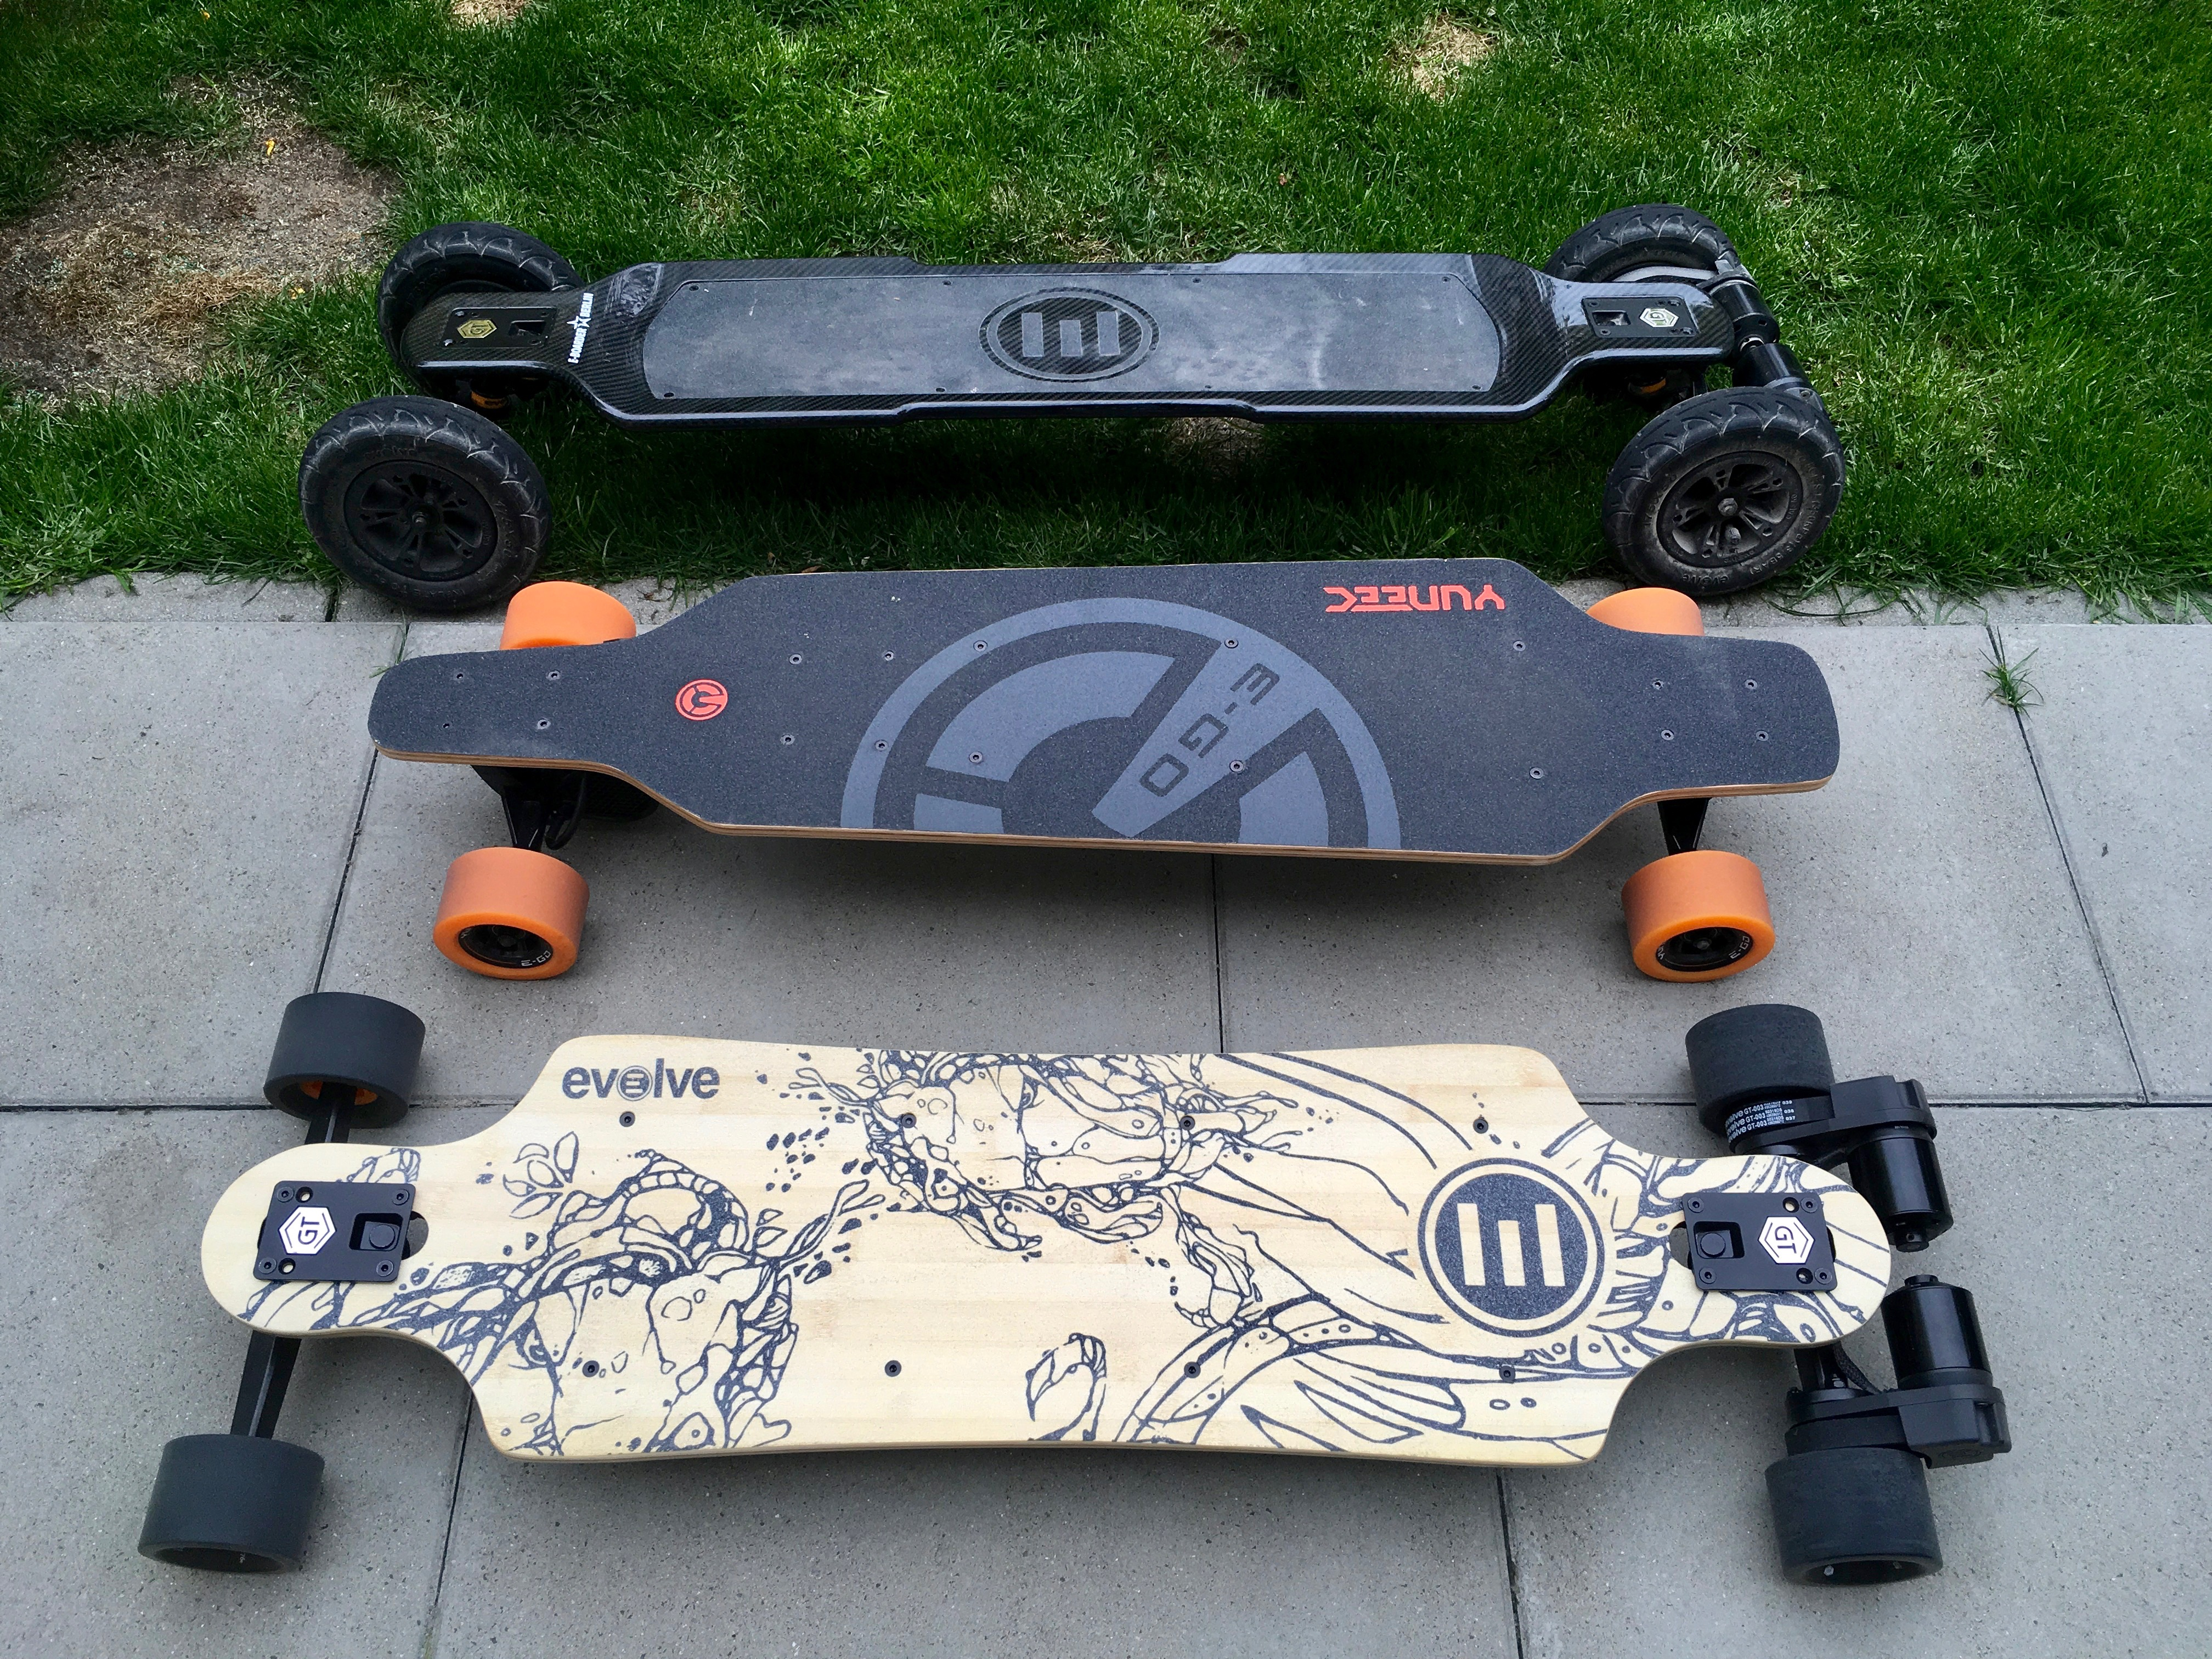 Electric Skateboard Market Universally Expected to Drive Growth through 2023 c30dad0a9e5